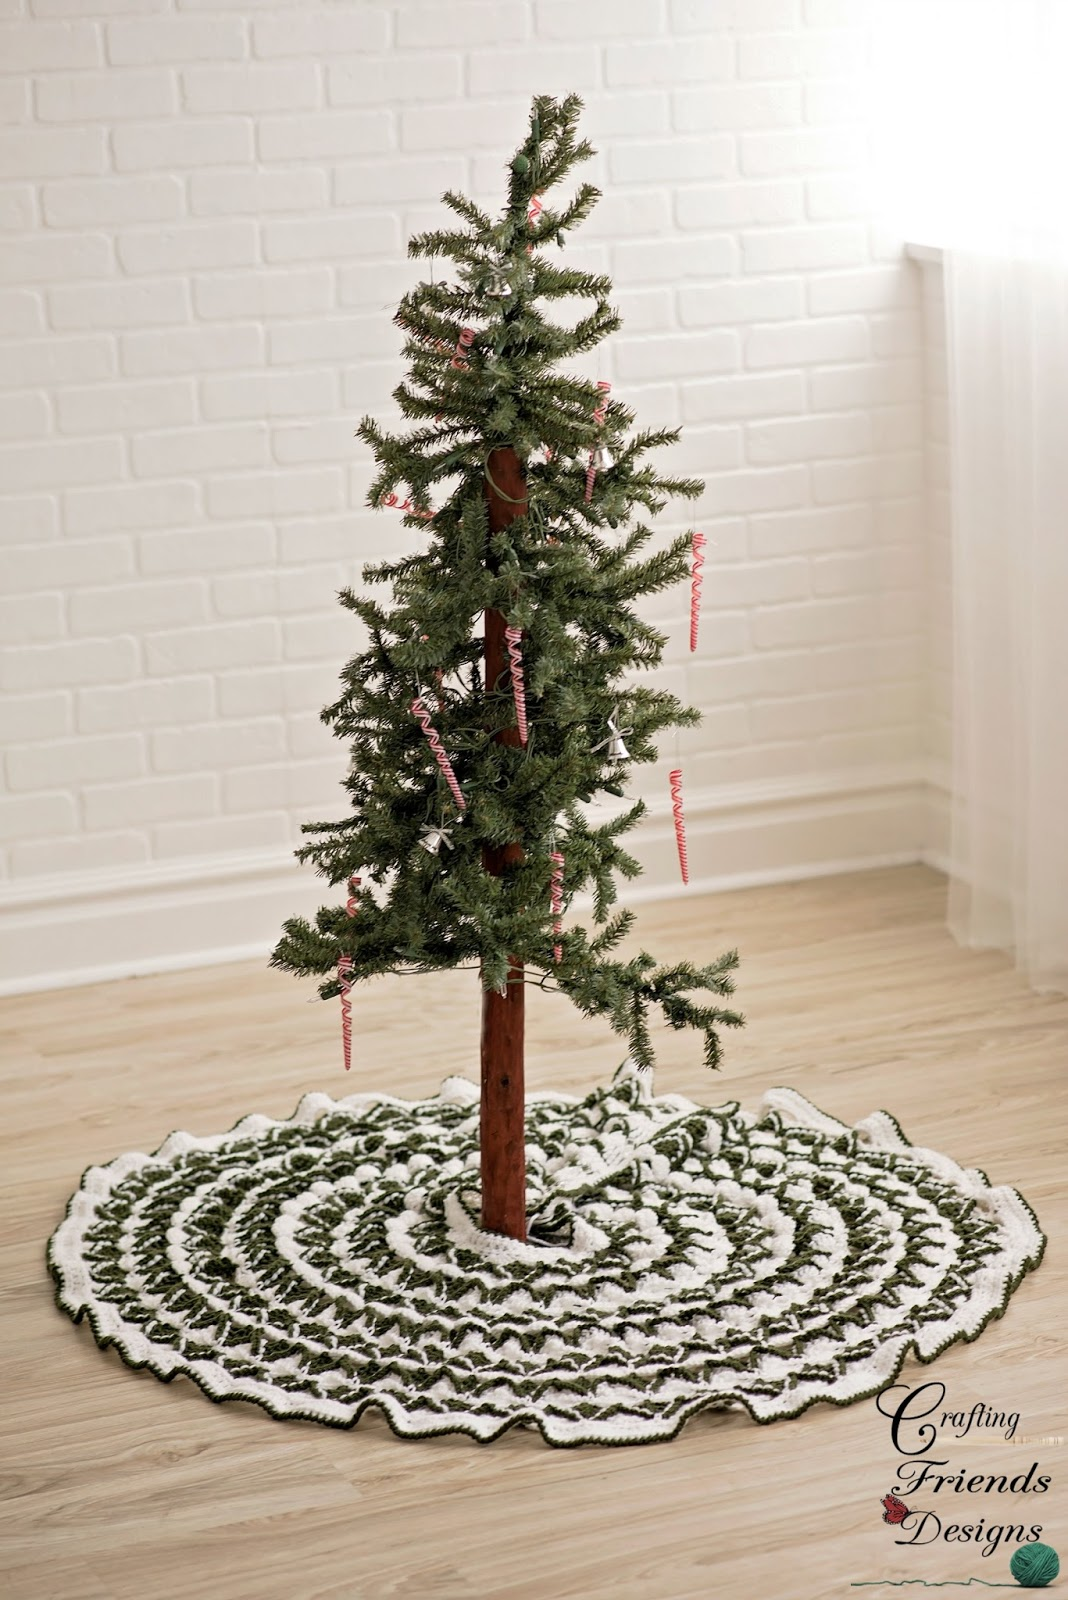 Green and White Crochet Tree Skirt